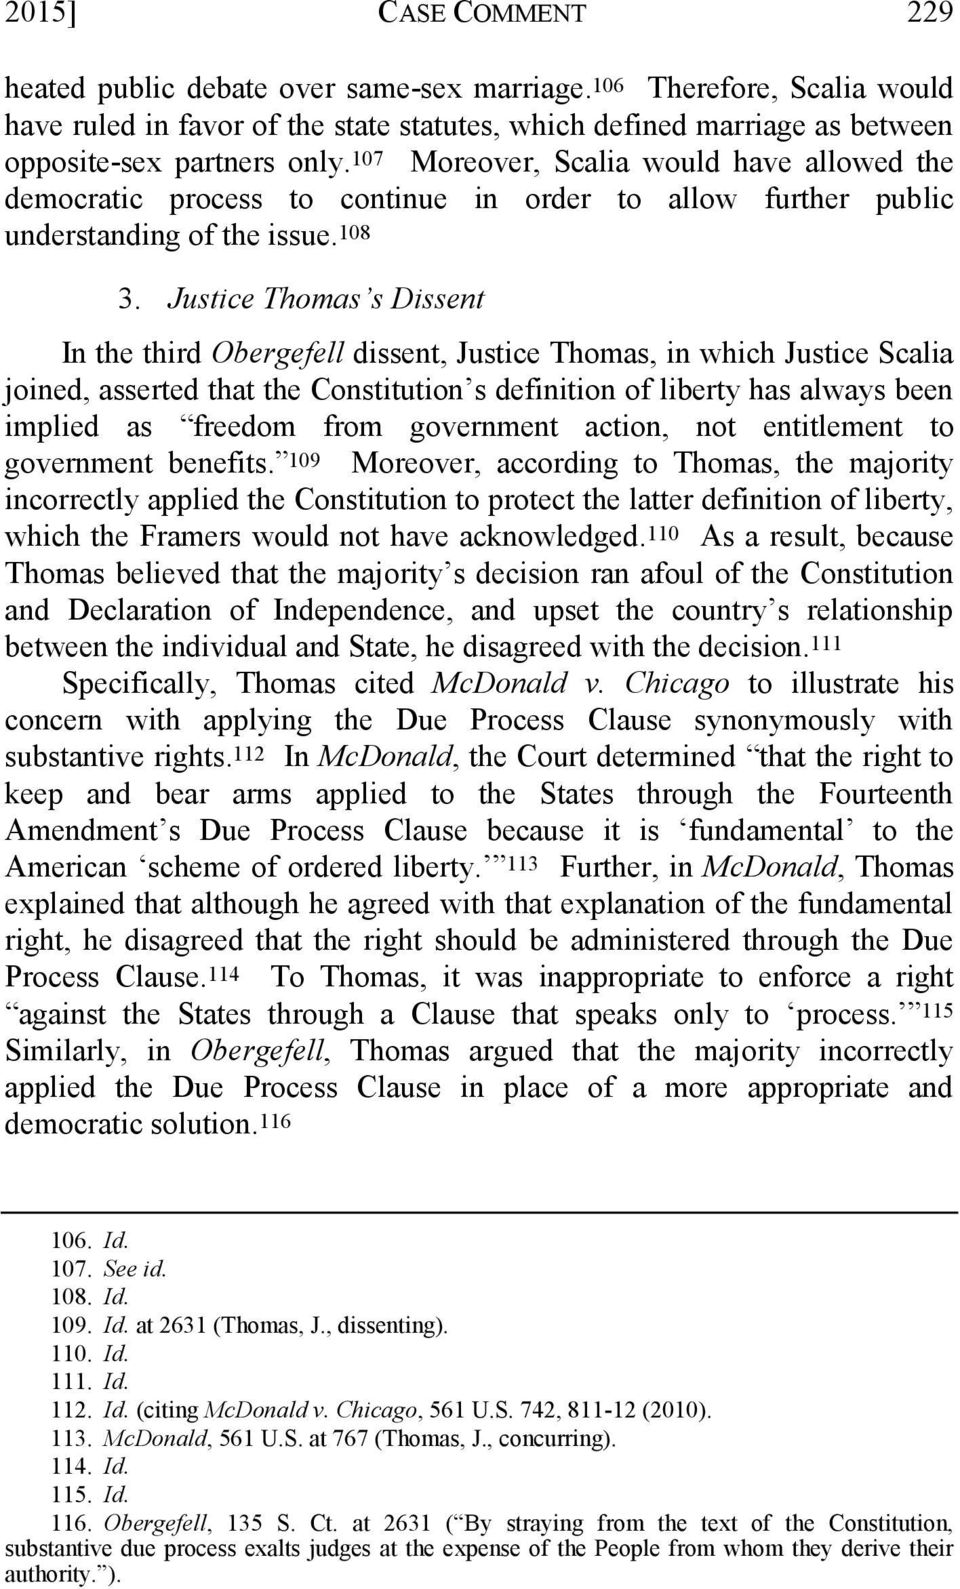 Justice Thomas s Dissent In the third Obergefell dissent, Justice Thomas, in which Justice Scalia joined, asserted that the Constitution s definition of liberty has always been implied as freedom